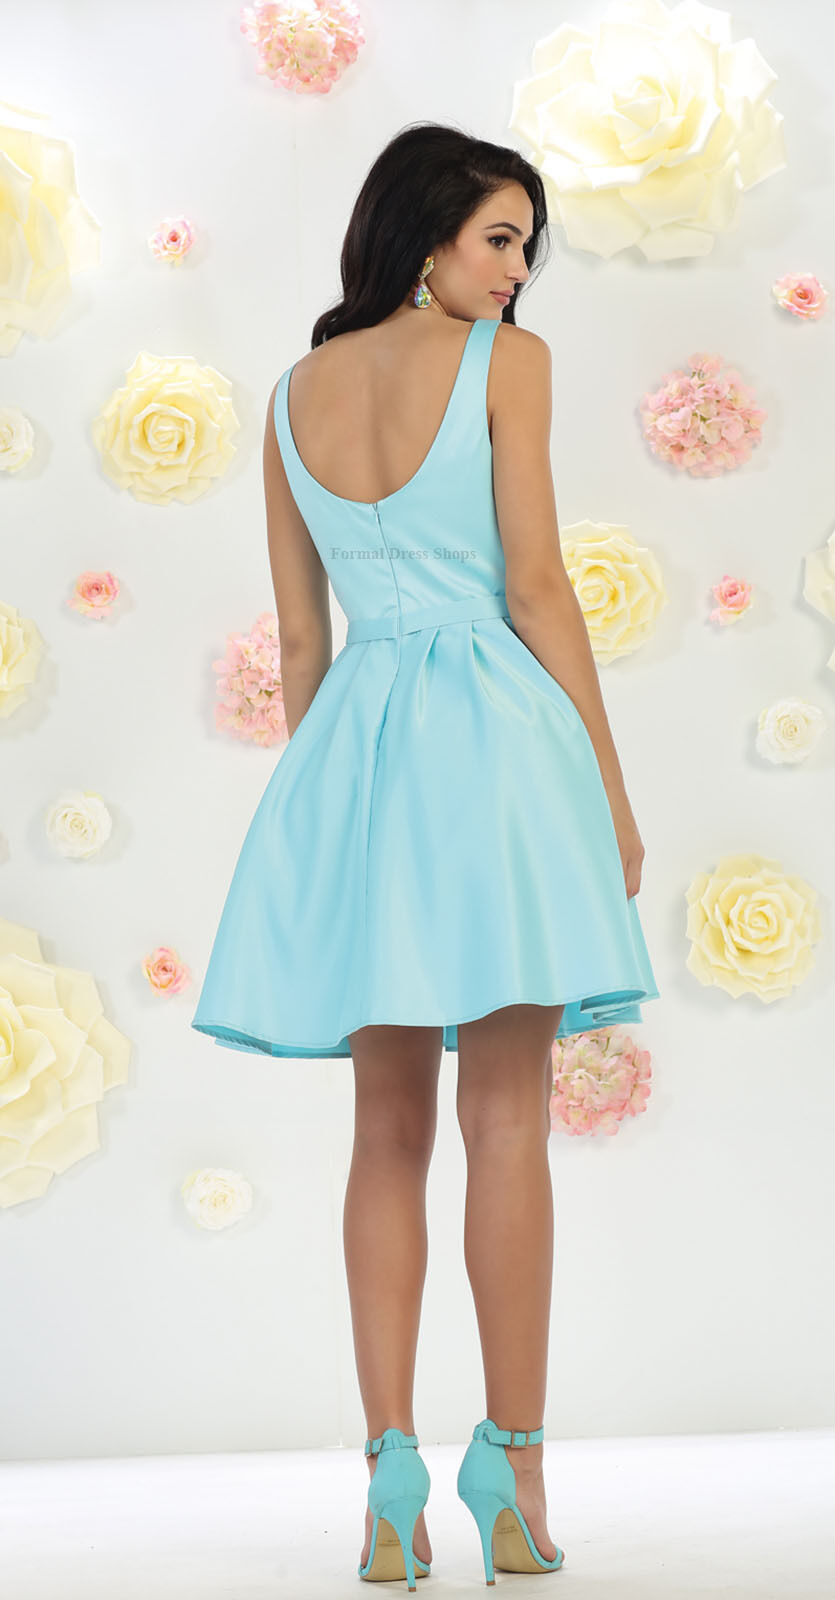 classy short flowy homecoming prom cute birthday dresses